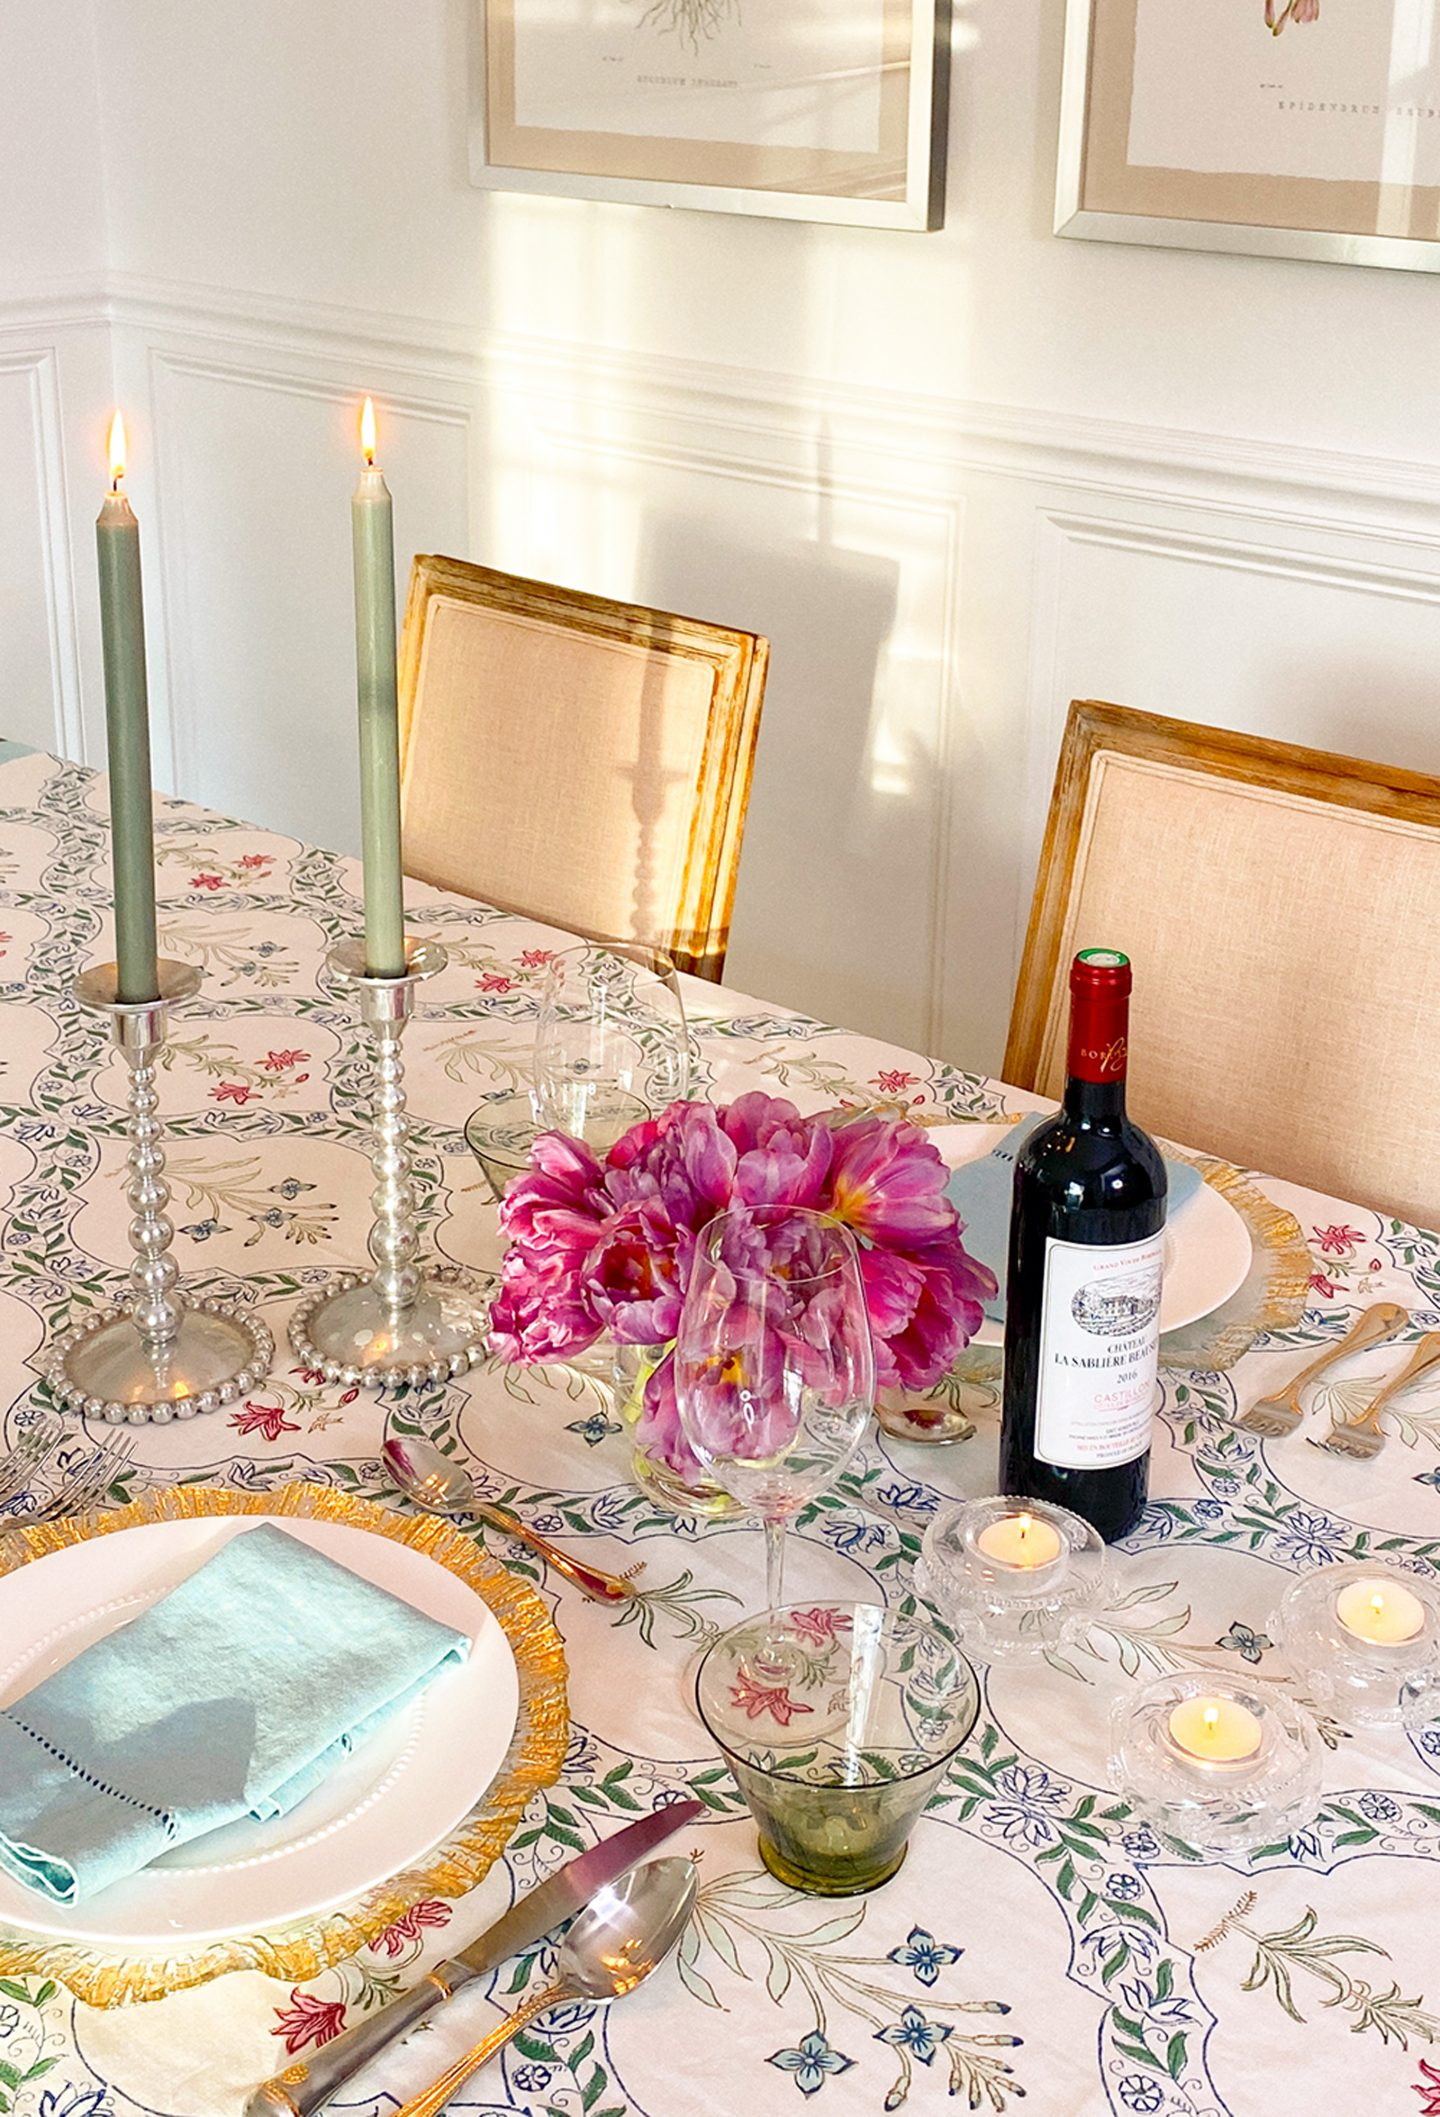 6 Playlists For Your Next Dinner Party